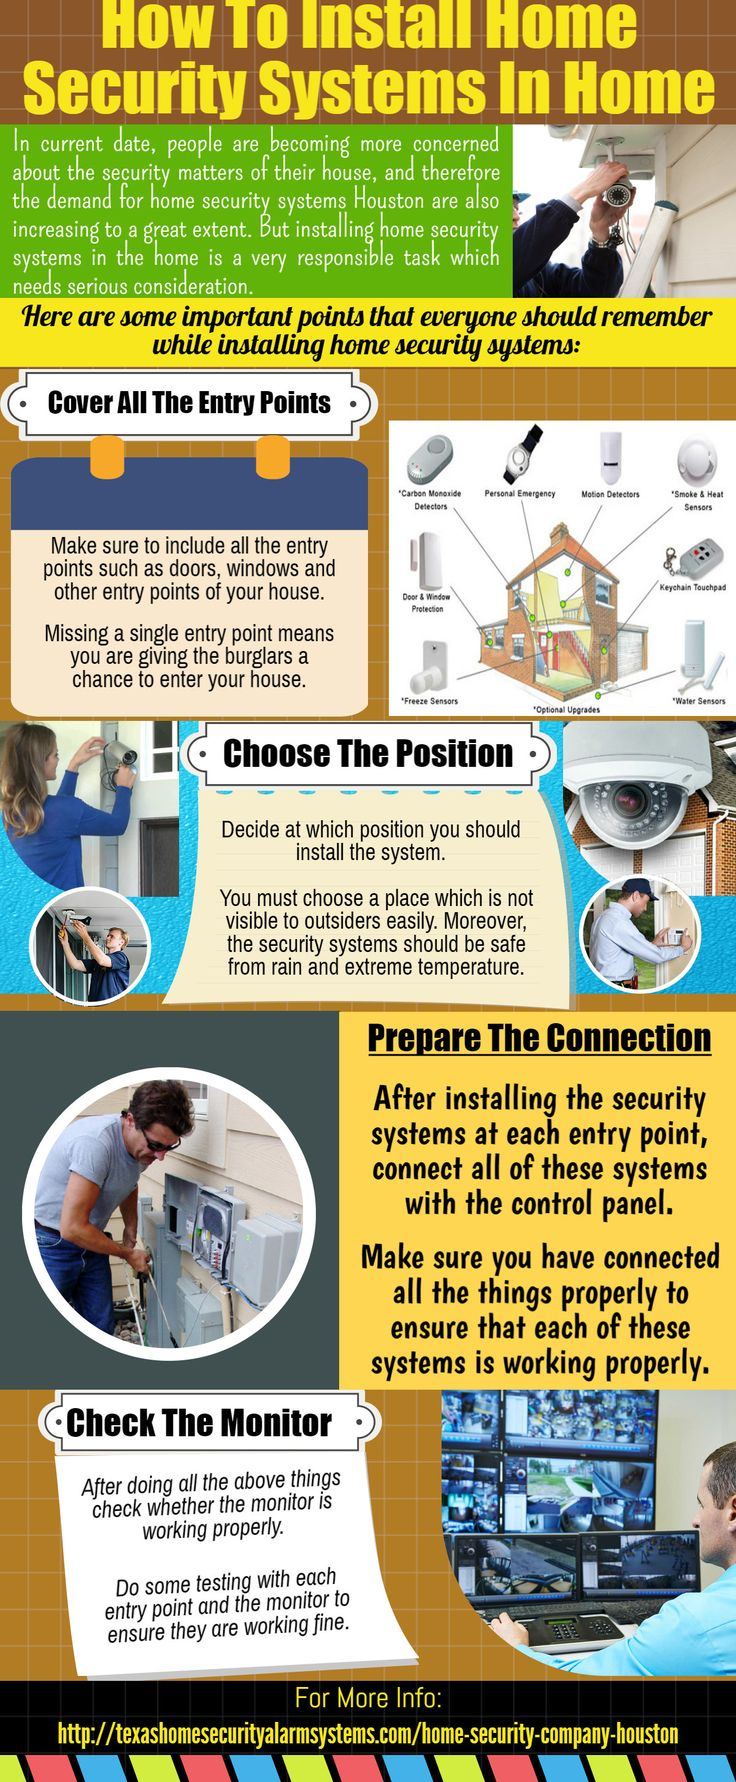 These gadgets can be connected to the smartphones and one can get live images from their homes at all times. For More Information about Home Security Systems Houston, please check http://texashomesecurityalarmsystems.com/home-security-company-houston